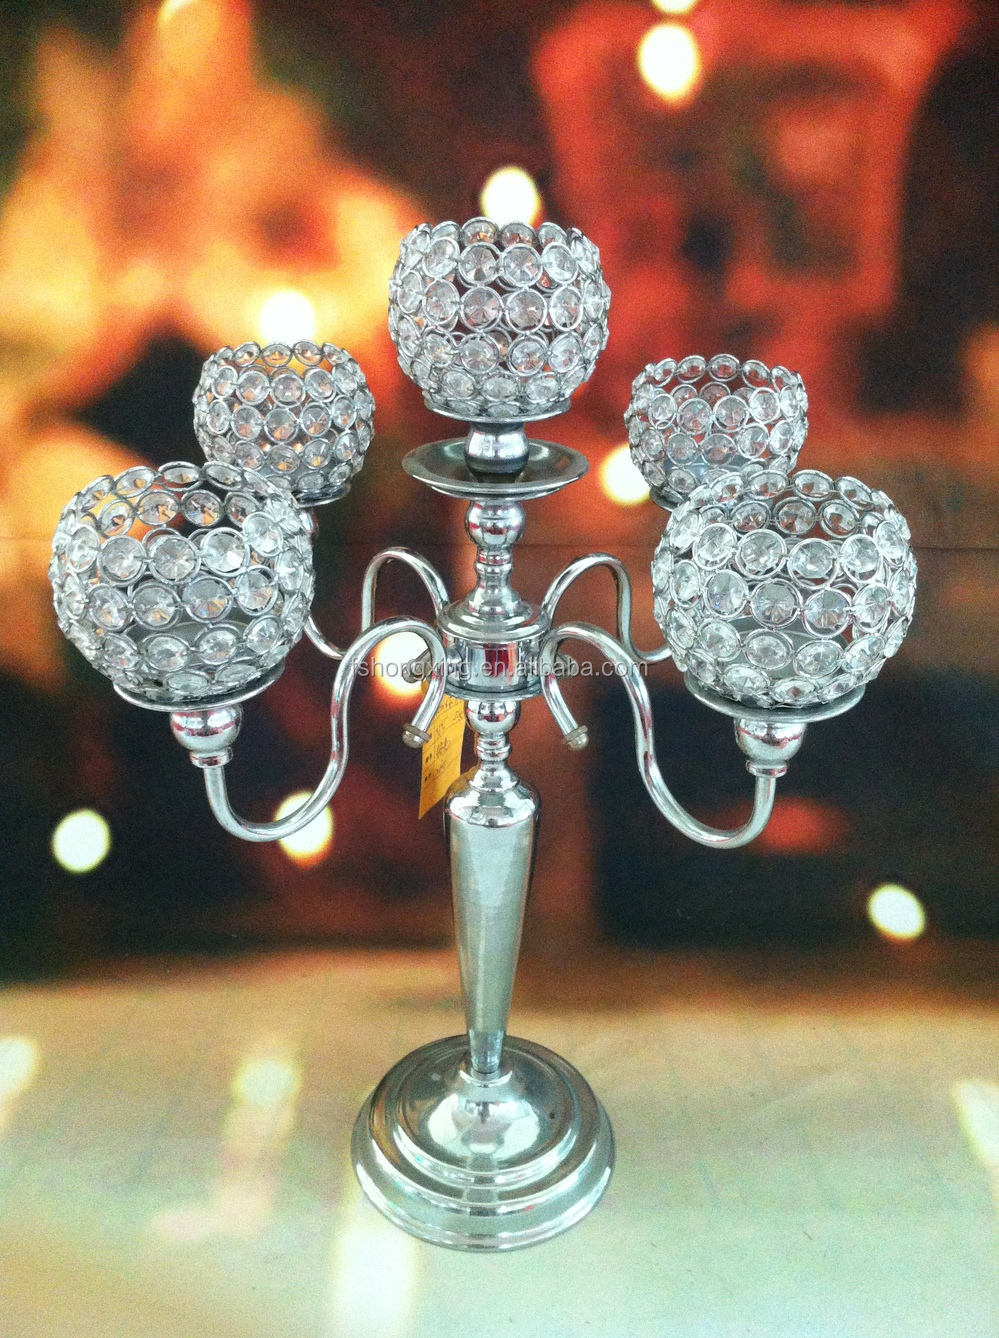 Arms tall wedding crystal globe candelabra centerpiece